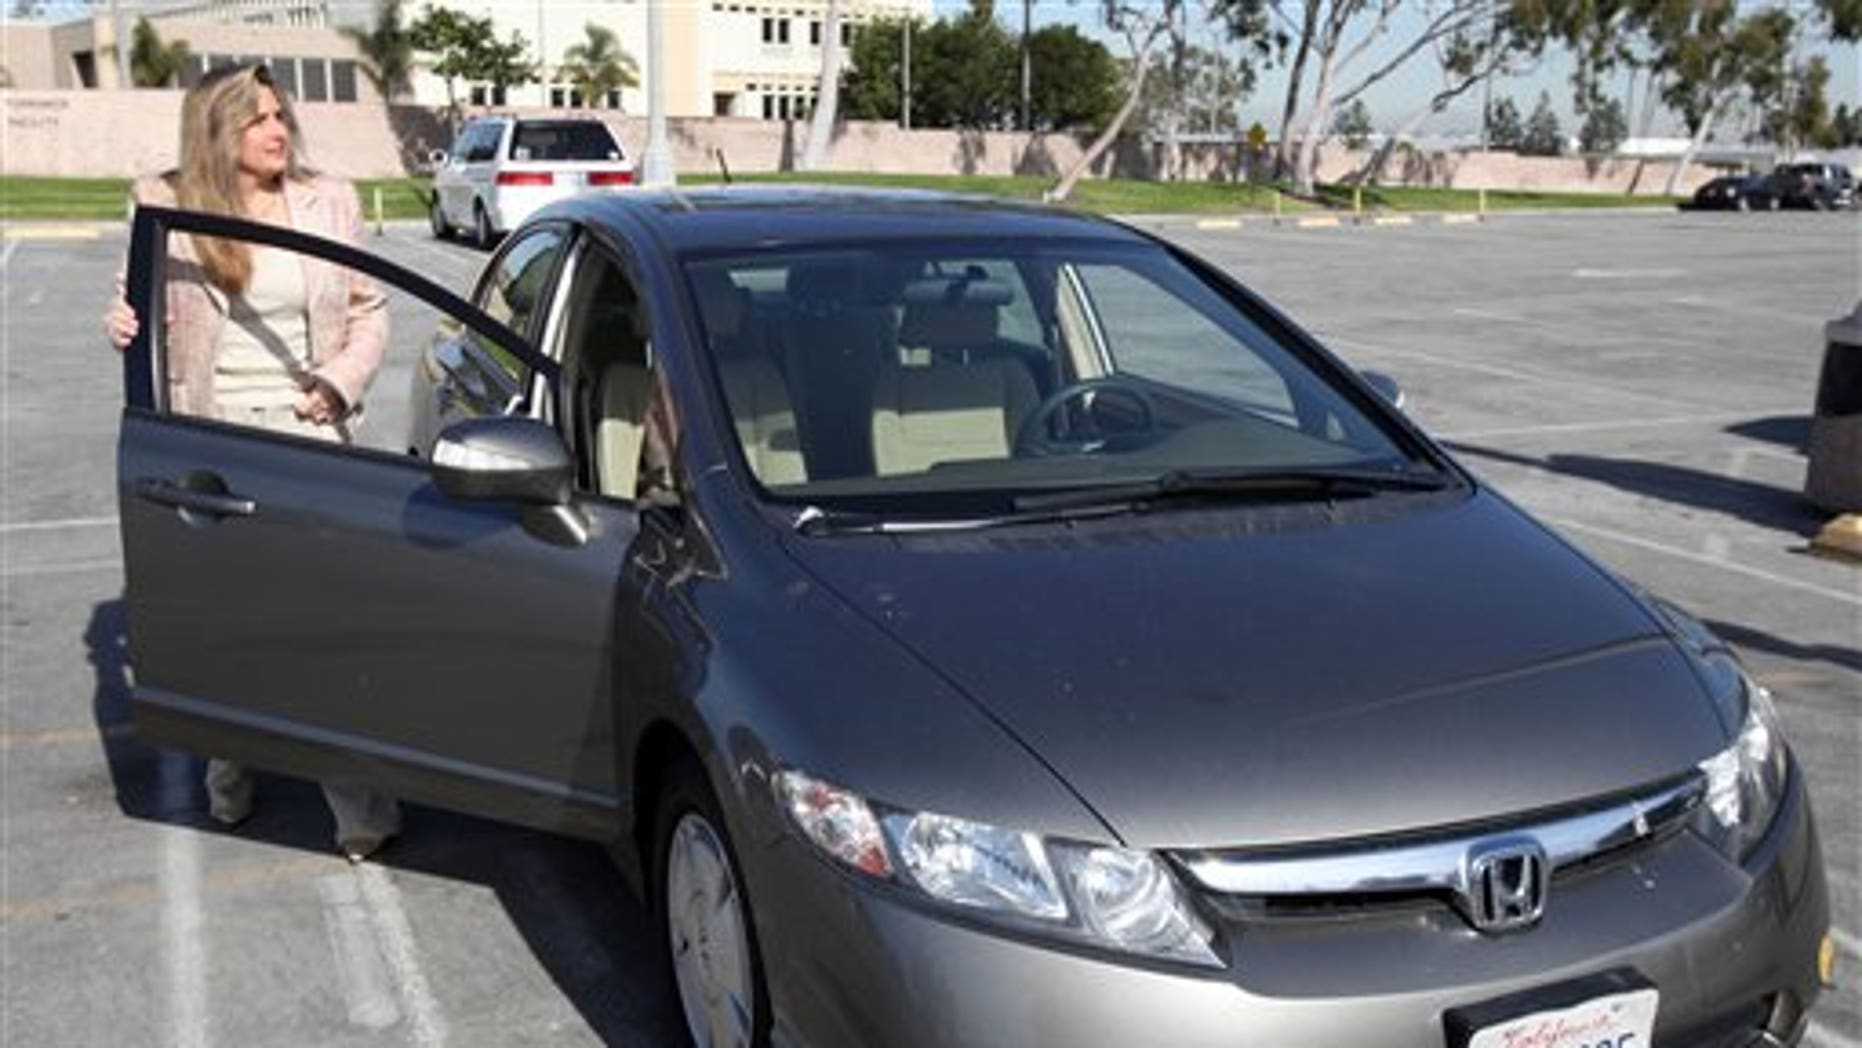 Jan. 3: Heather Peters, who says her 2006 Honda Civic Hybrid never achieved the gas mileage Honda claimed in its advertising, and also did a computer upgrade that further diminished the mileage, arrives at Small Claims Court in Torrrance, California.